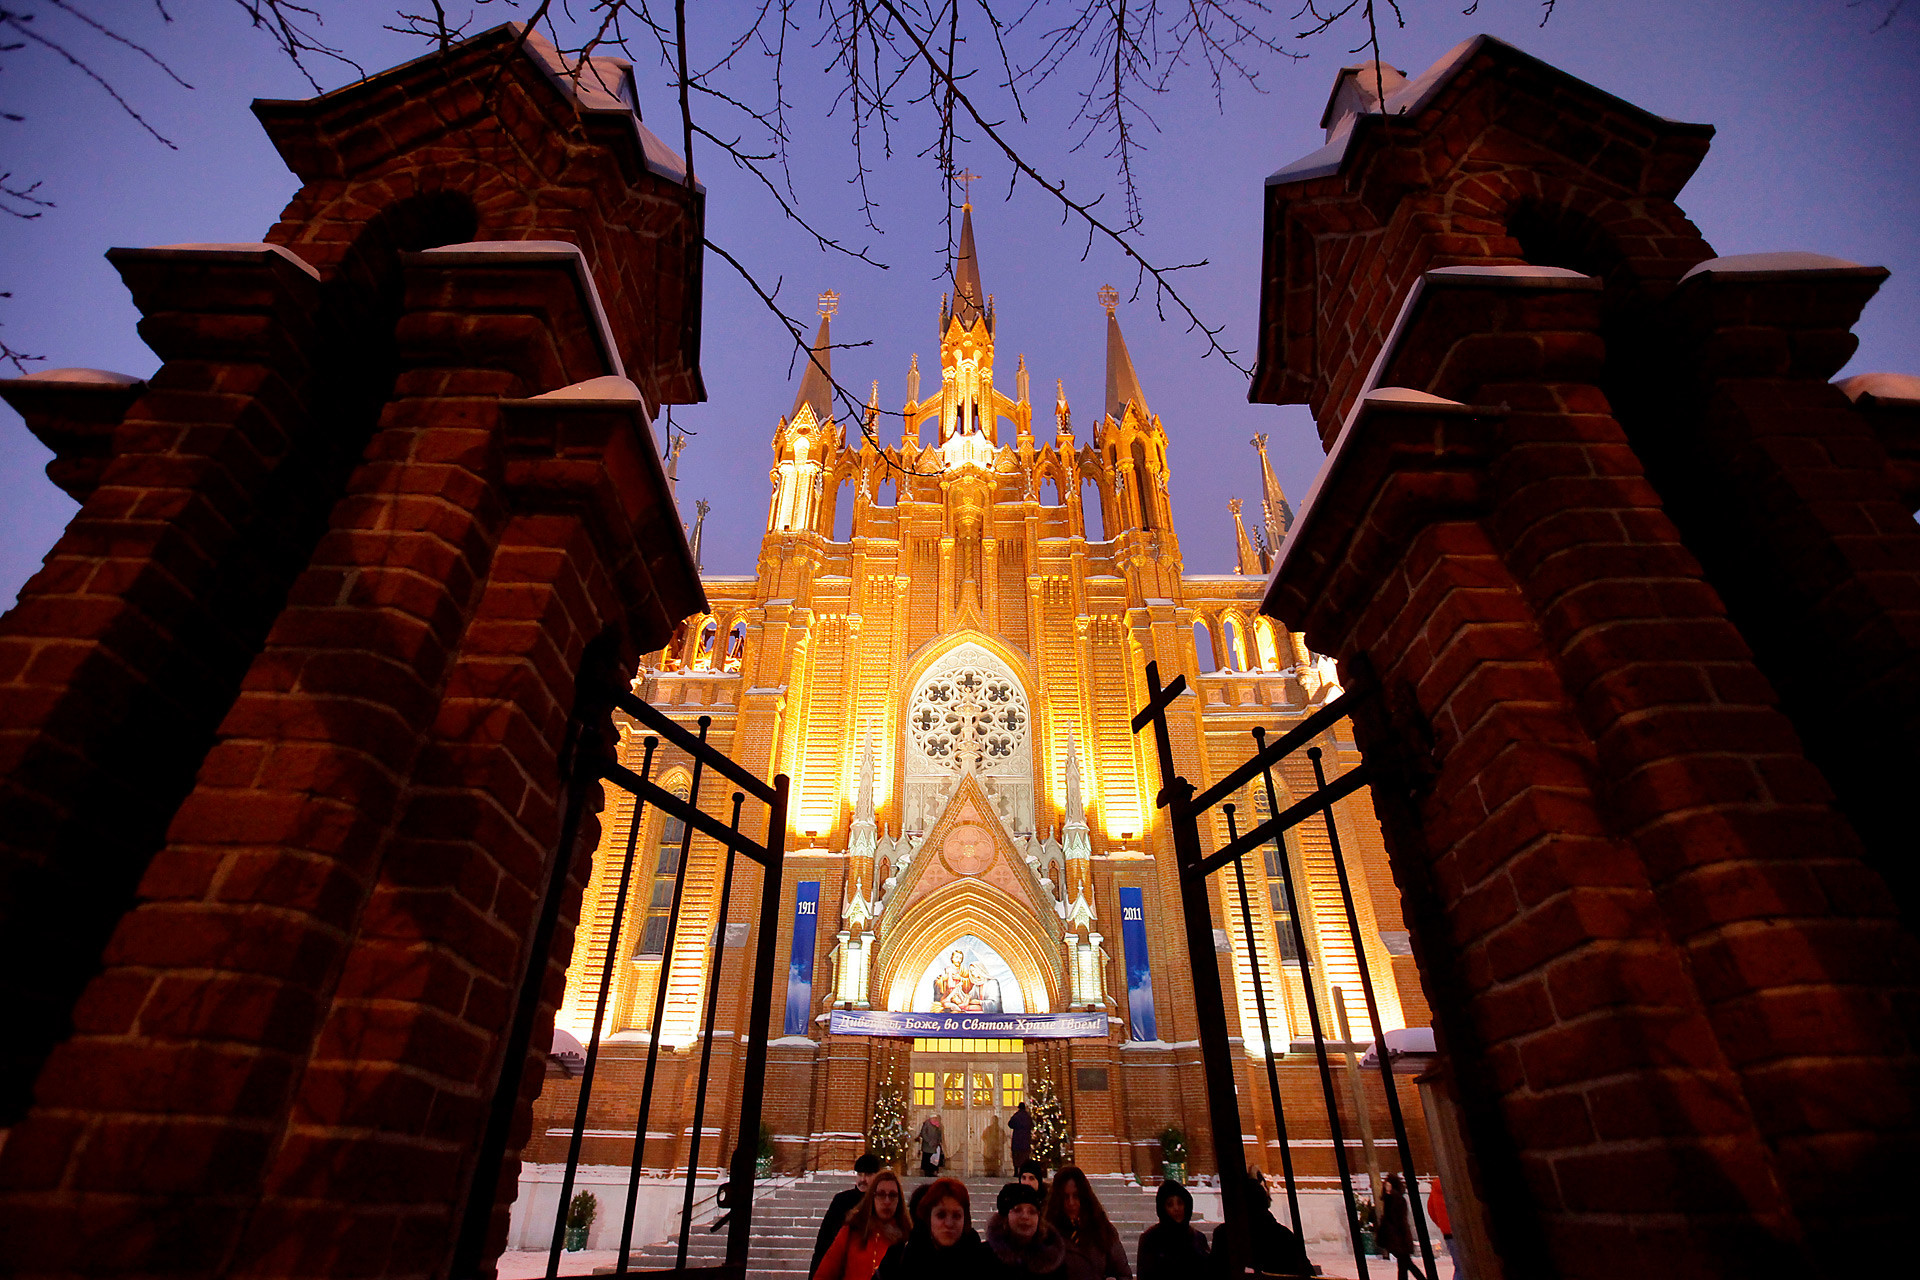 Believers near the Roman Catholic Cathedral of the Immaculate Conception of the Holy Virgin Mary during Catholic Christmas celebrations in Moscow.